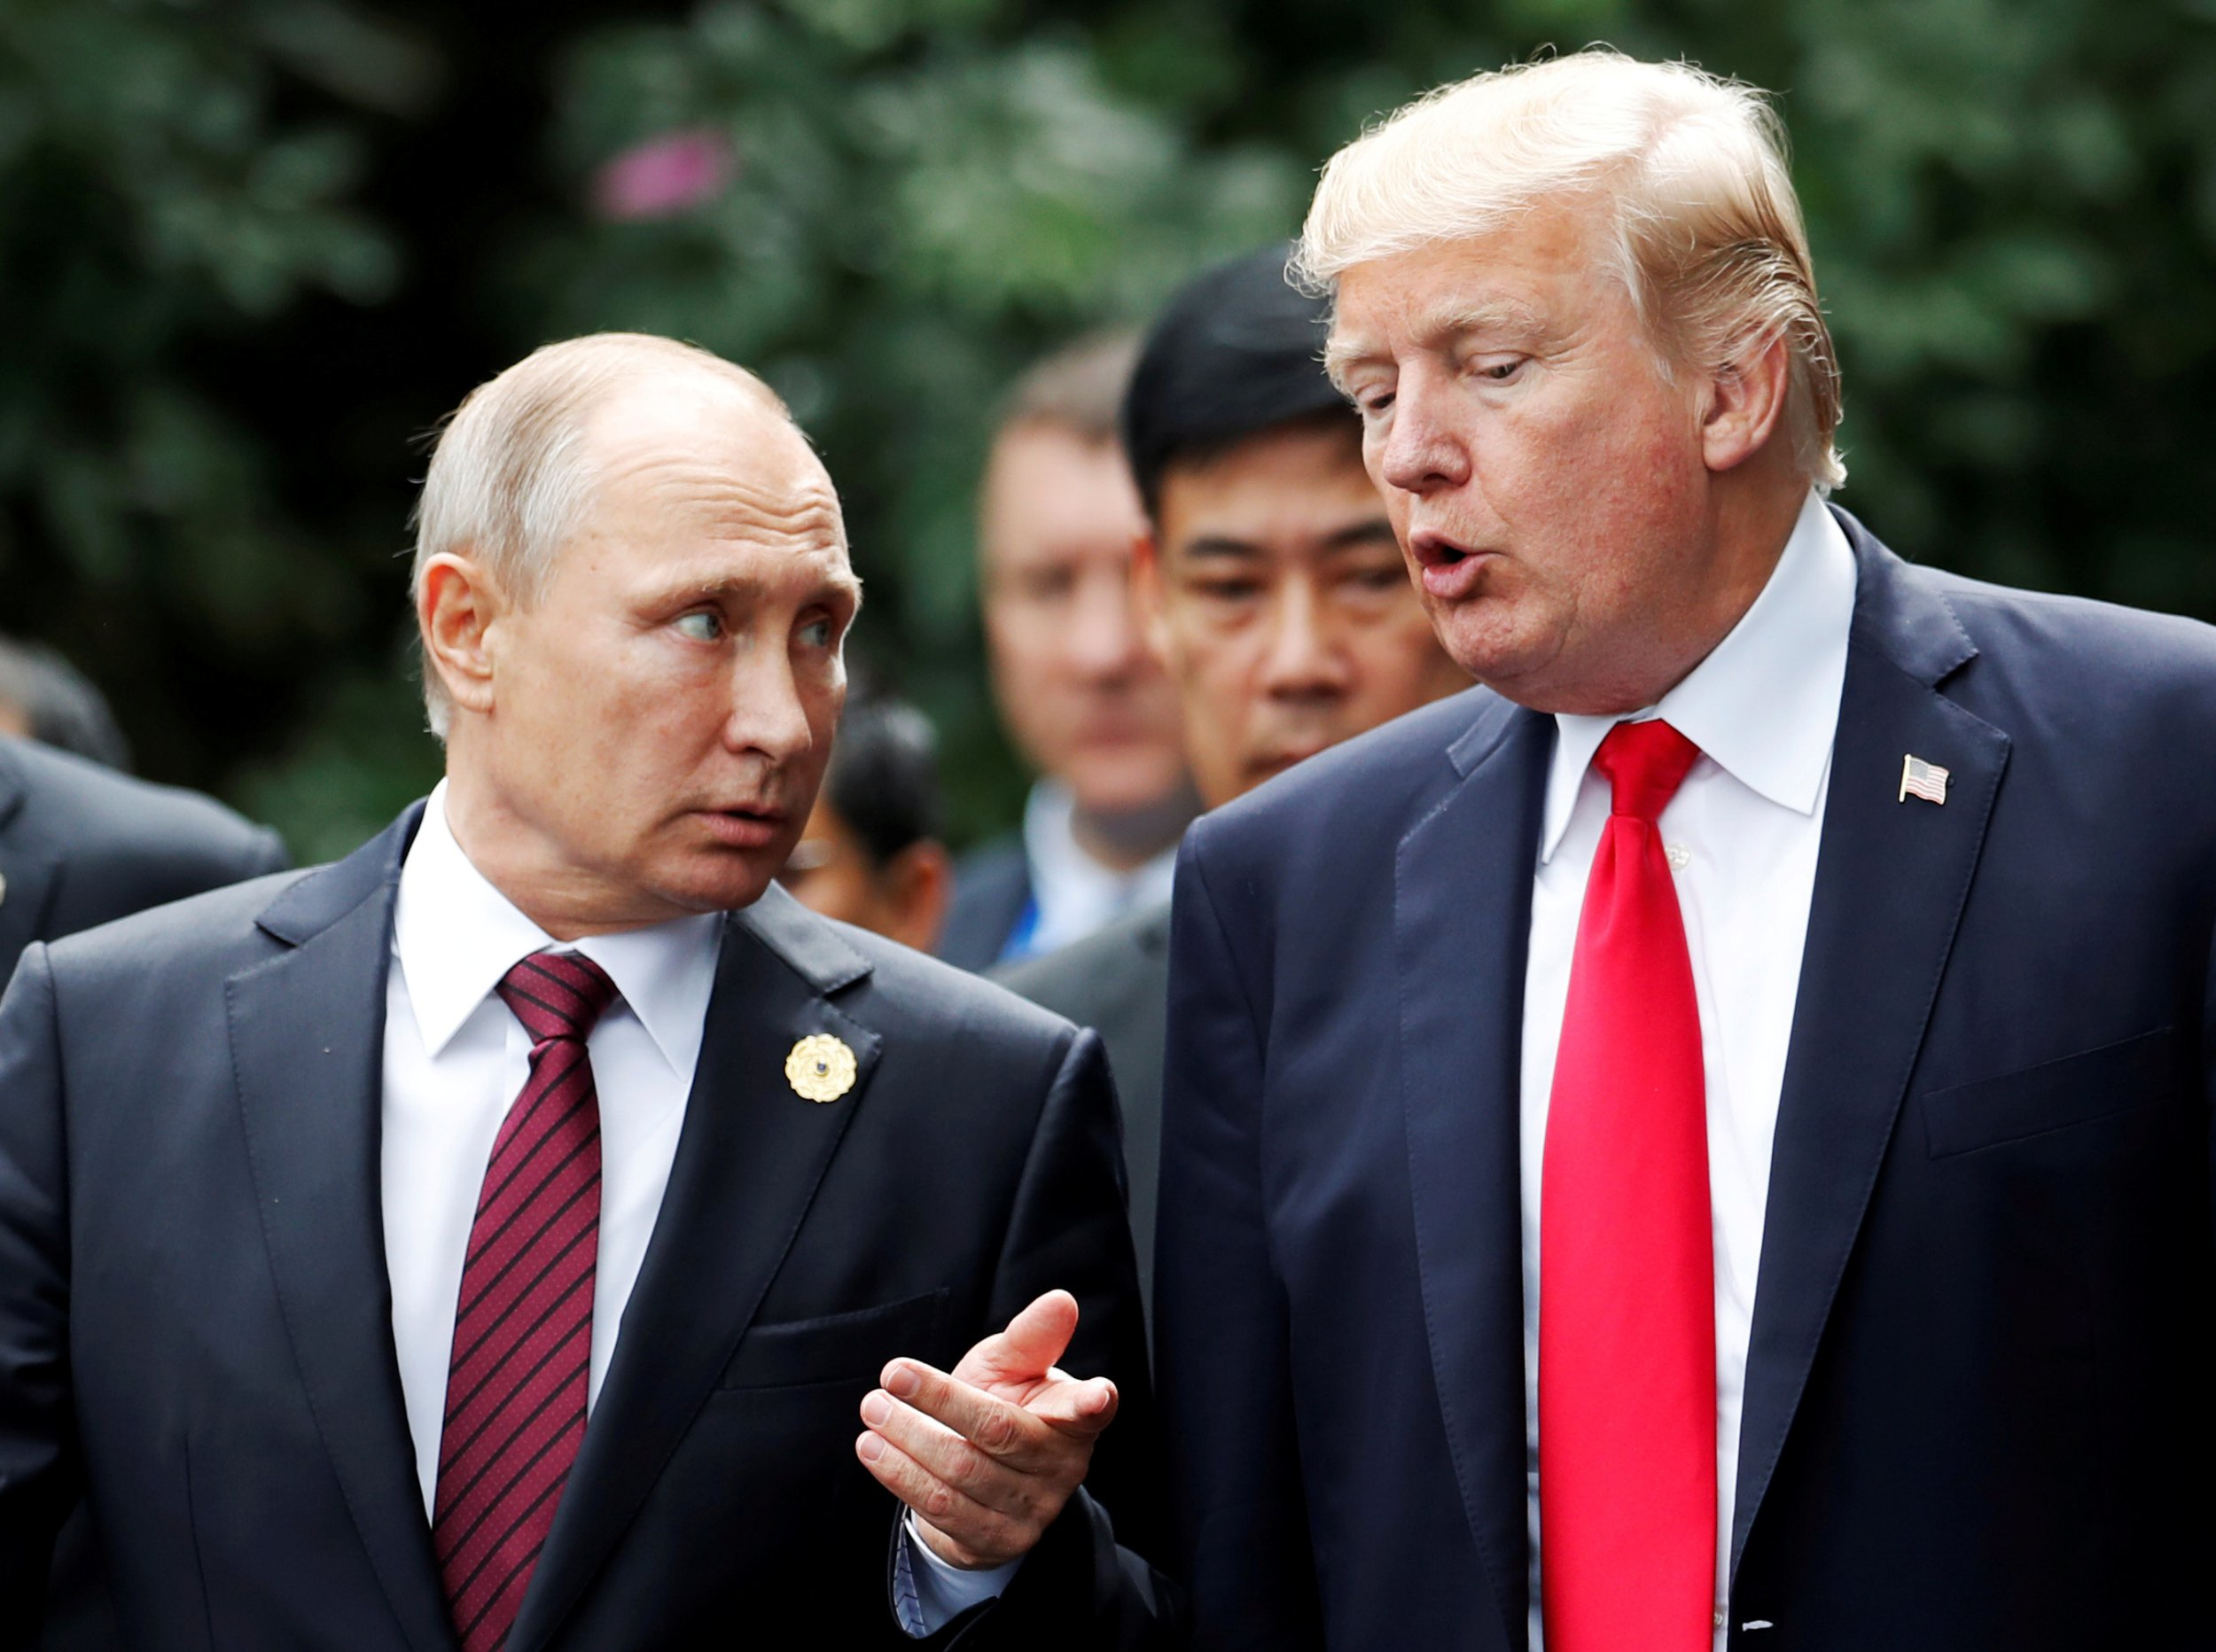 U.S. President Donald Trump and Russia's President Vladimir Putin talk during the family photo session at the APEC Summit in Danang, Vietnam November 11, 2017. REUTERS/Jorge Silva TPX IMAGES OF THE DAY - RC1E7D8D2110